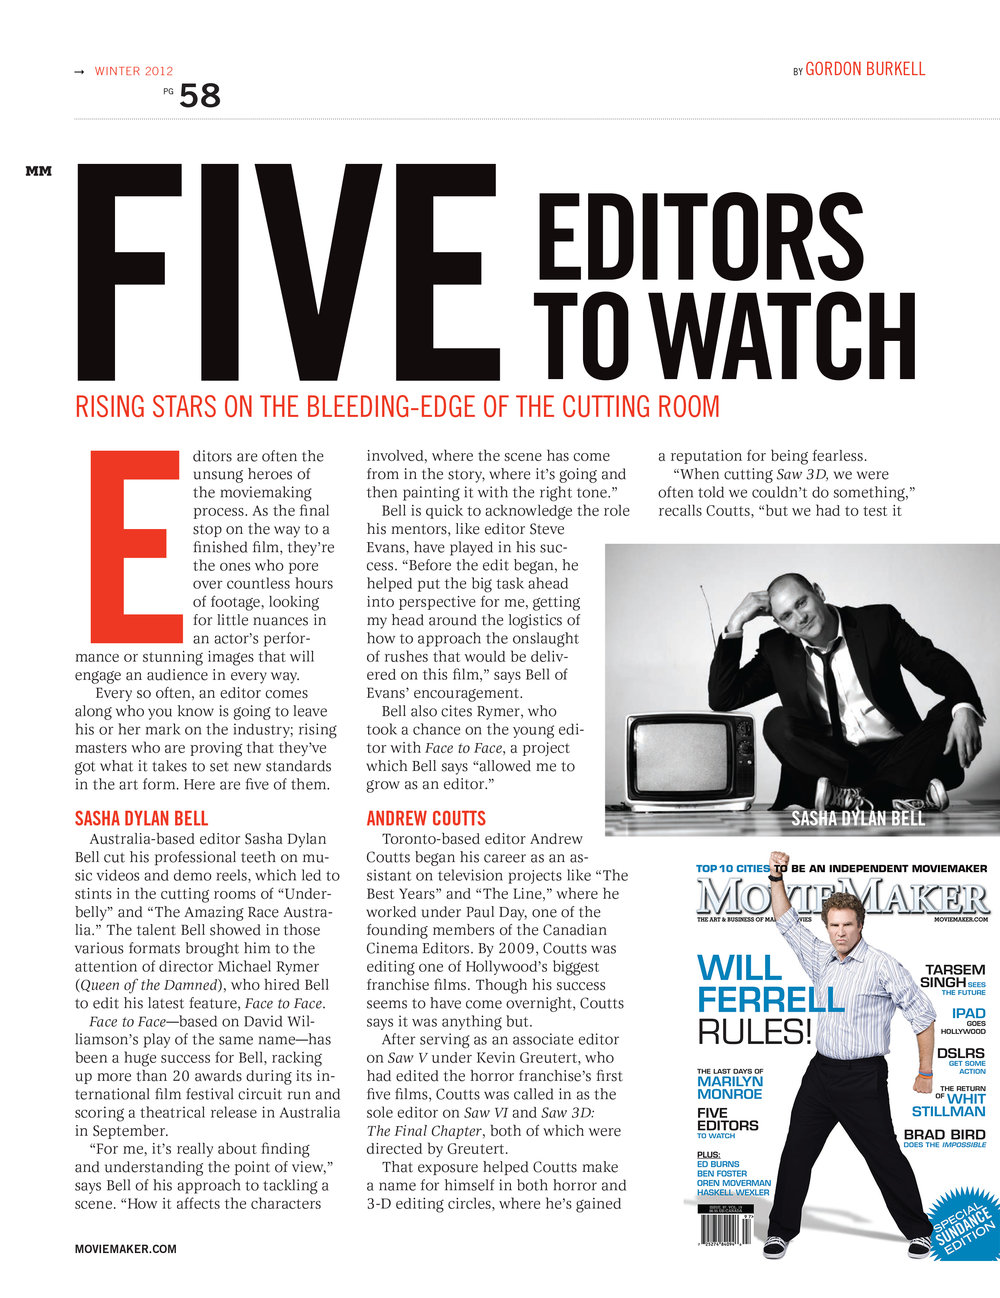 """FIVE EDITORS TO WATCH"" article, as featured in Moviemaker Magazine 2012"